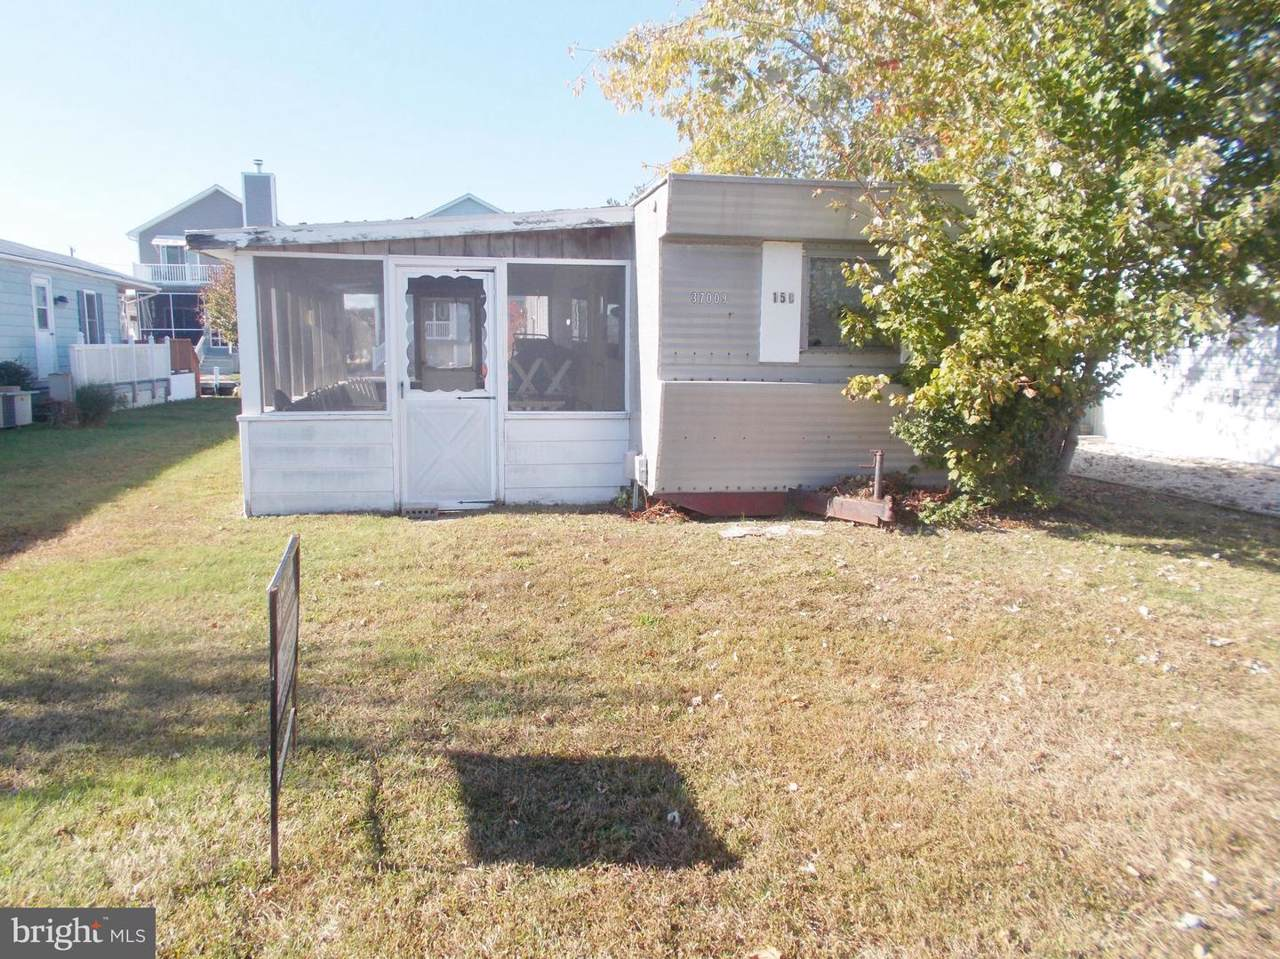 37009 Blue Teal Road - Photo 1